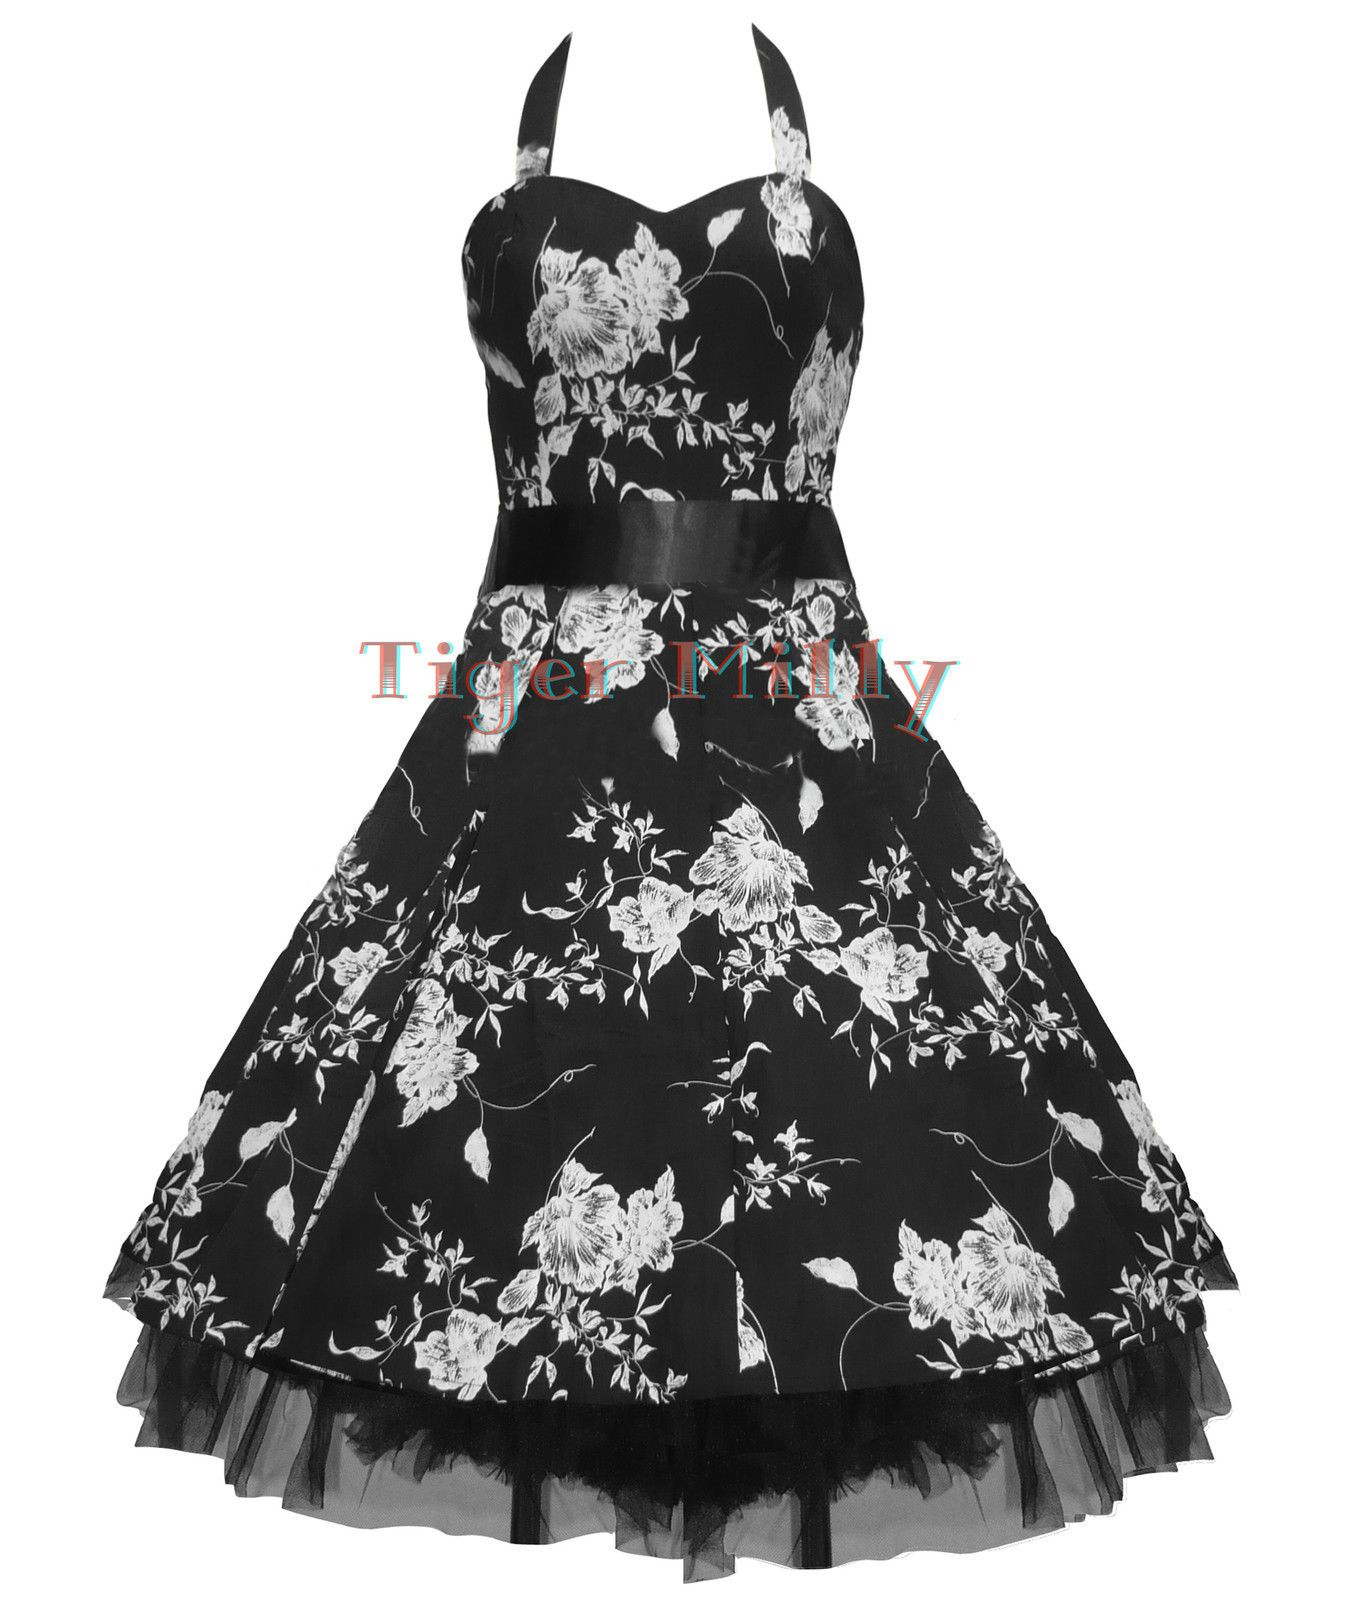 Black and white dresses for wedding guests  us FLORAL PROM WEDDING DRESS BLACK u WHITE SIZE   Prom